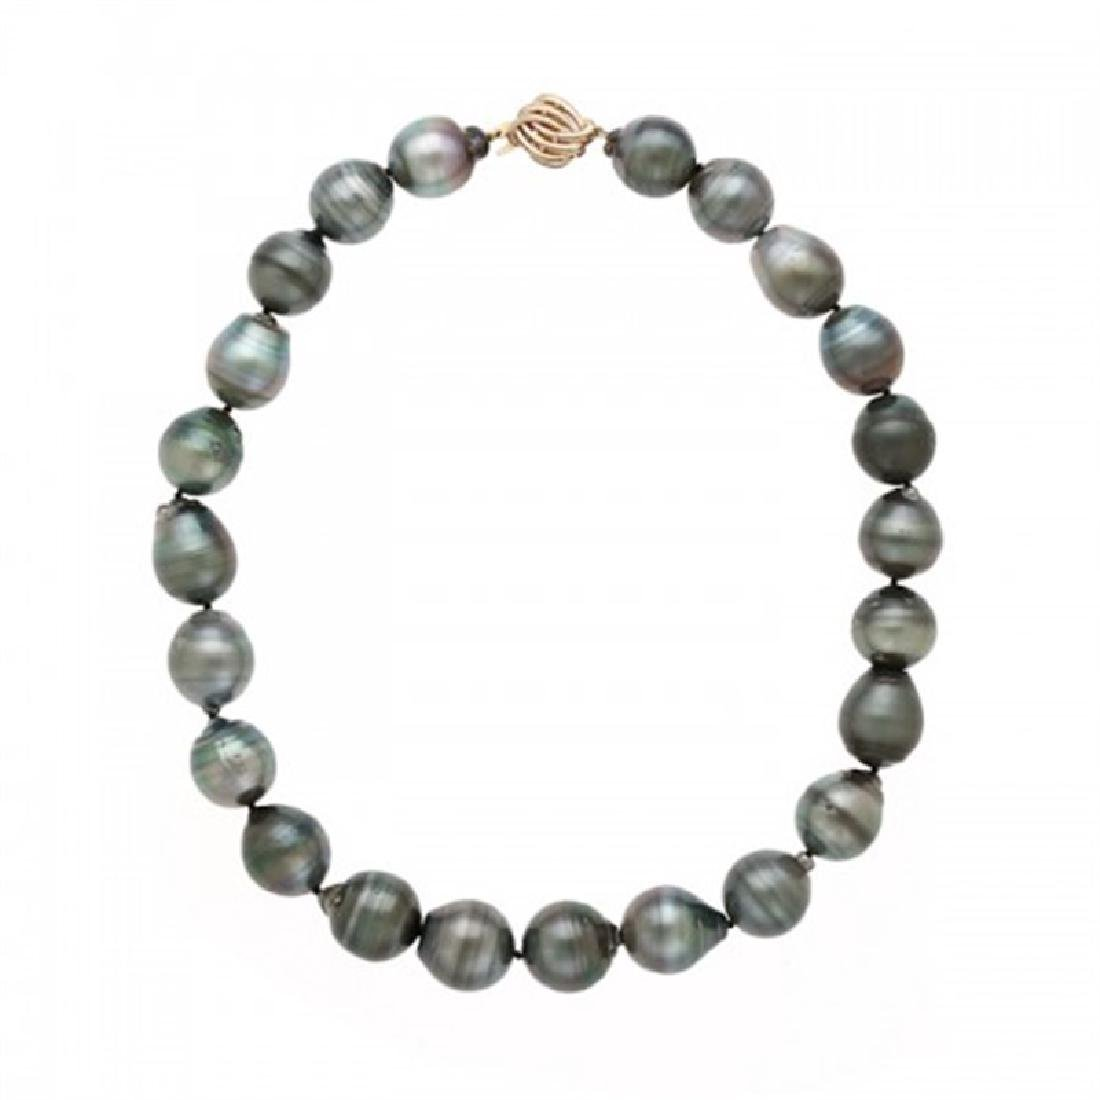 15.0-17.0mm Tahitian Pearl Necklace